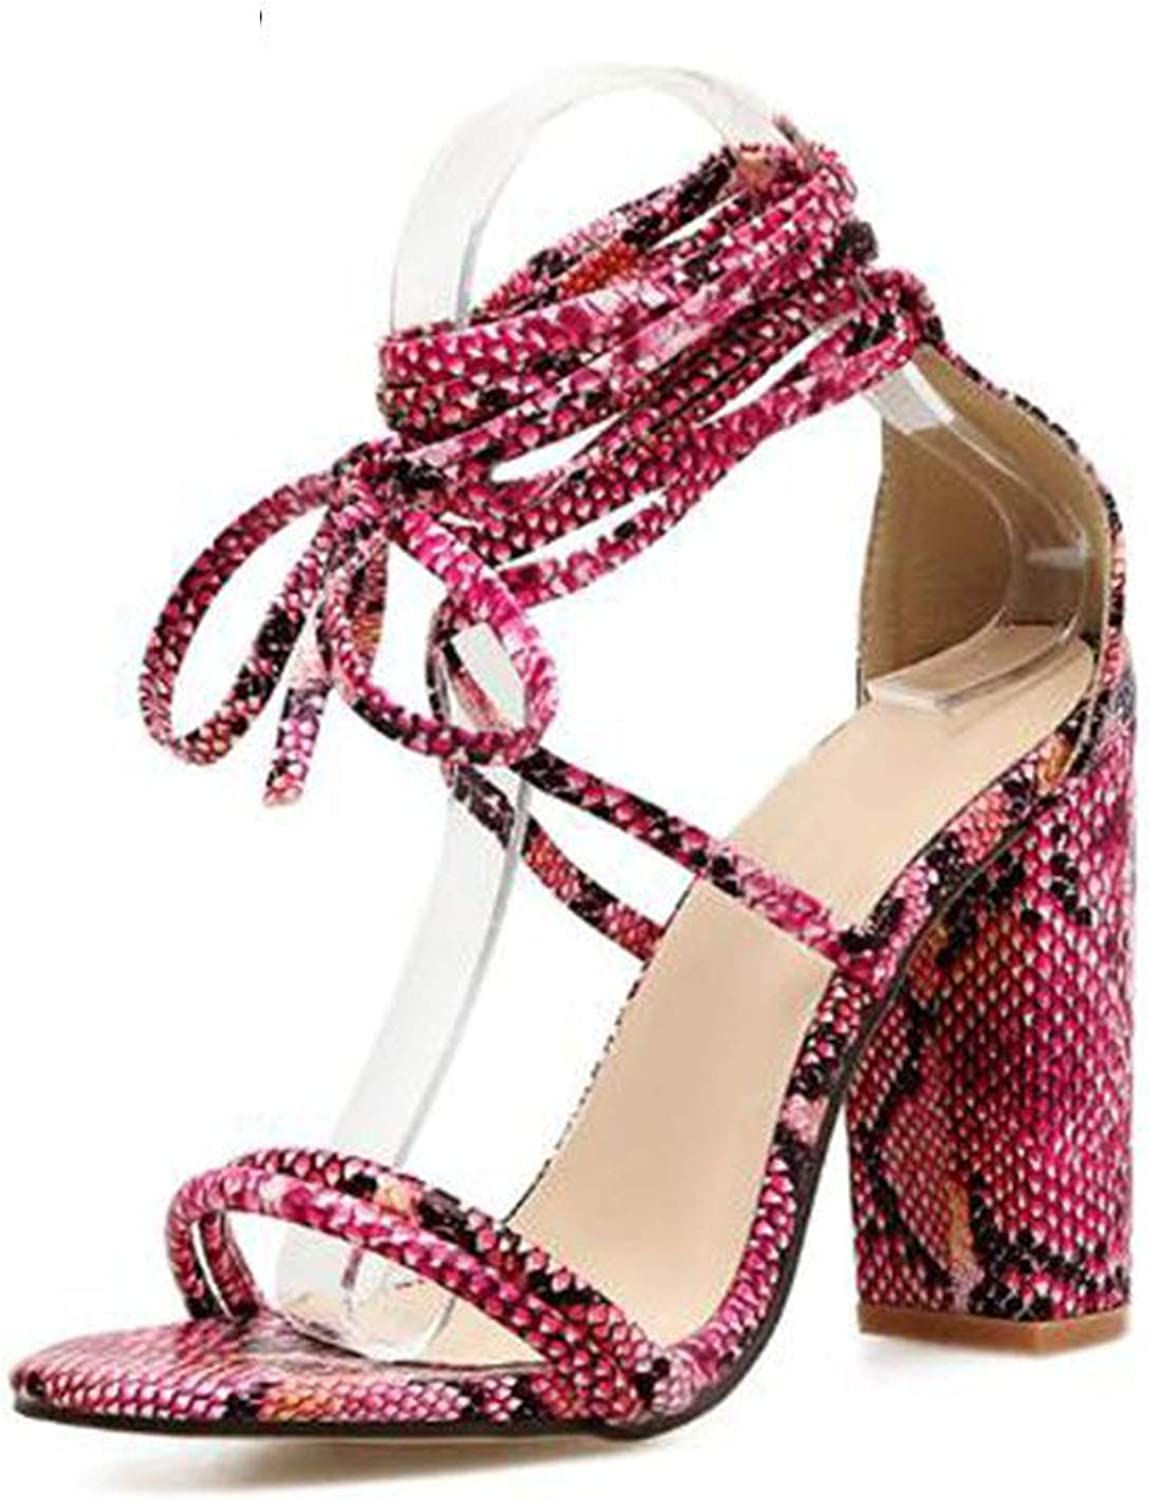 pink flowers Women Sandals High Heels Ladies Summer shoes Lace-up Cross-Tied Heeled Sandals Ladies Snake Print shoes